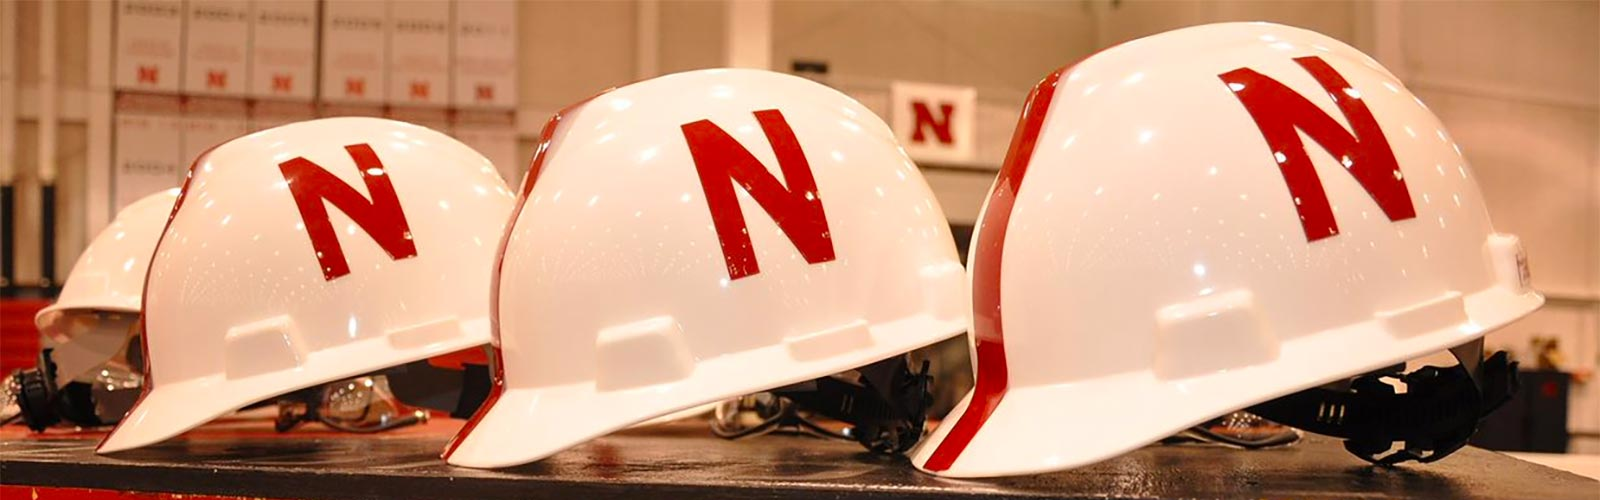 3 hard hats with Husker N's on them lined up next to each other.